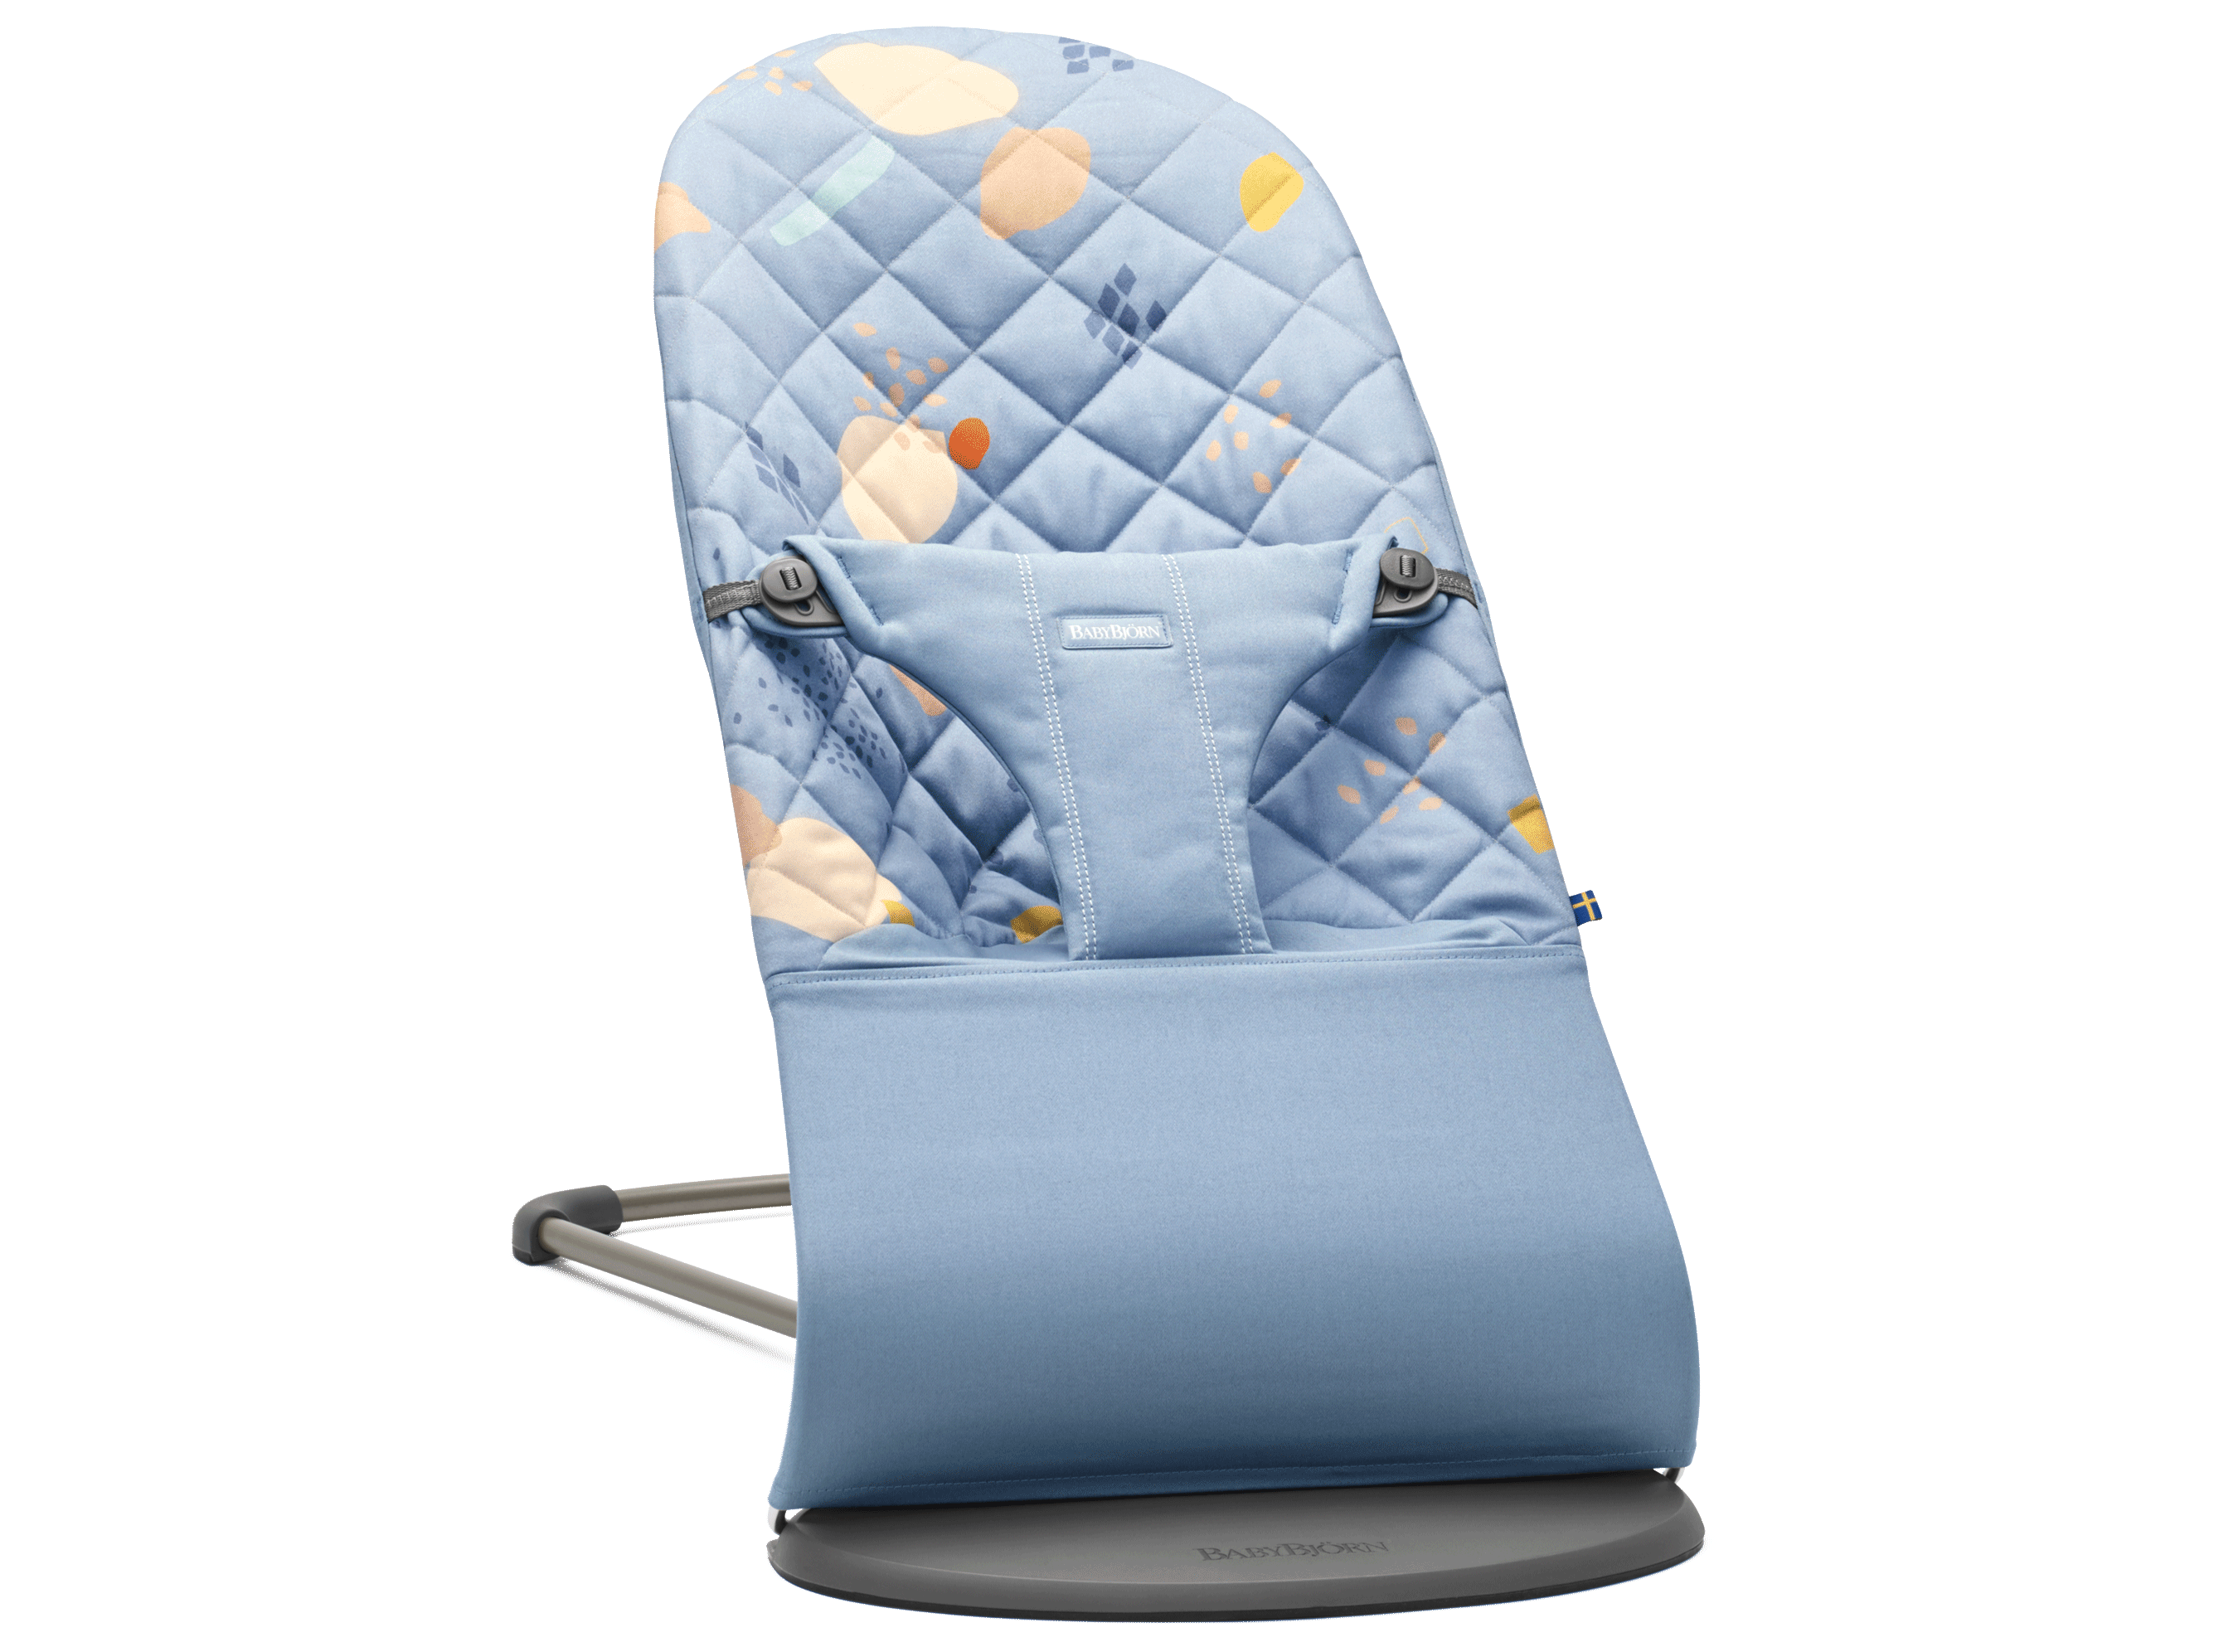 BABYBJÖRN Bouncer Bliss, Confetti/Blue, Cotton – Baby Power Collection